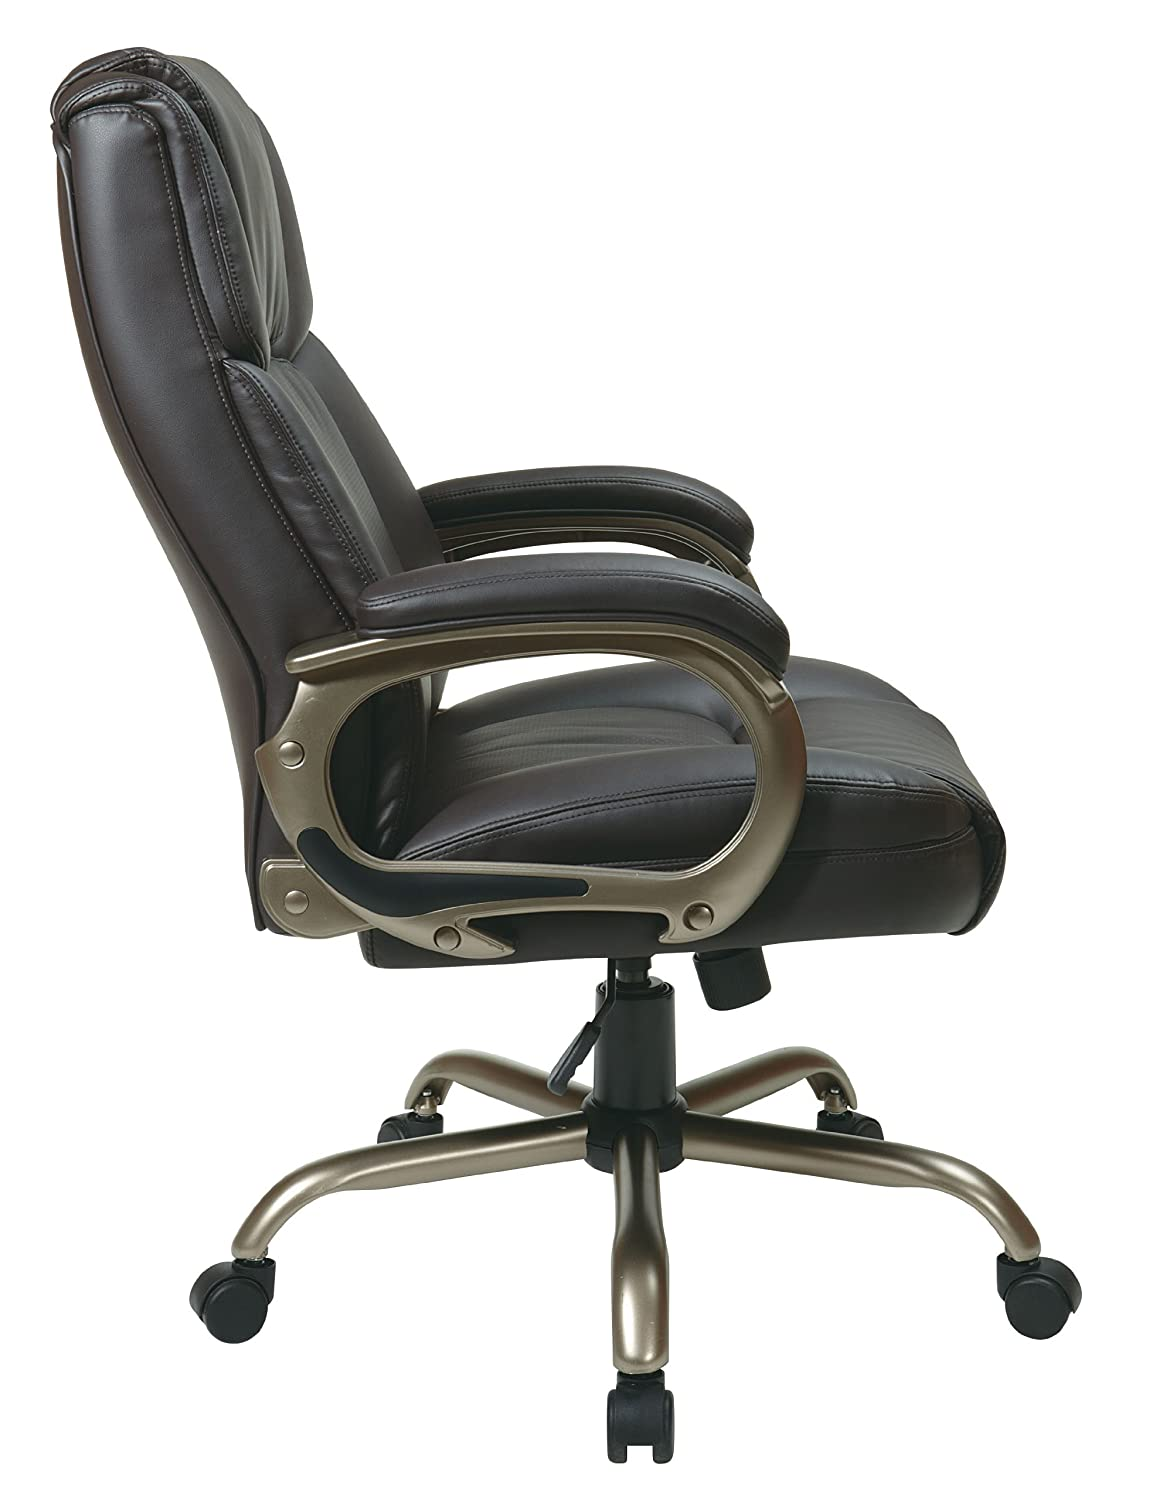 Office chairs for big and tall - Amazon Com Office Star Executive Big Man S Chair With Eco Leather Seat And Back Espresso Kitchen Dining